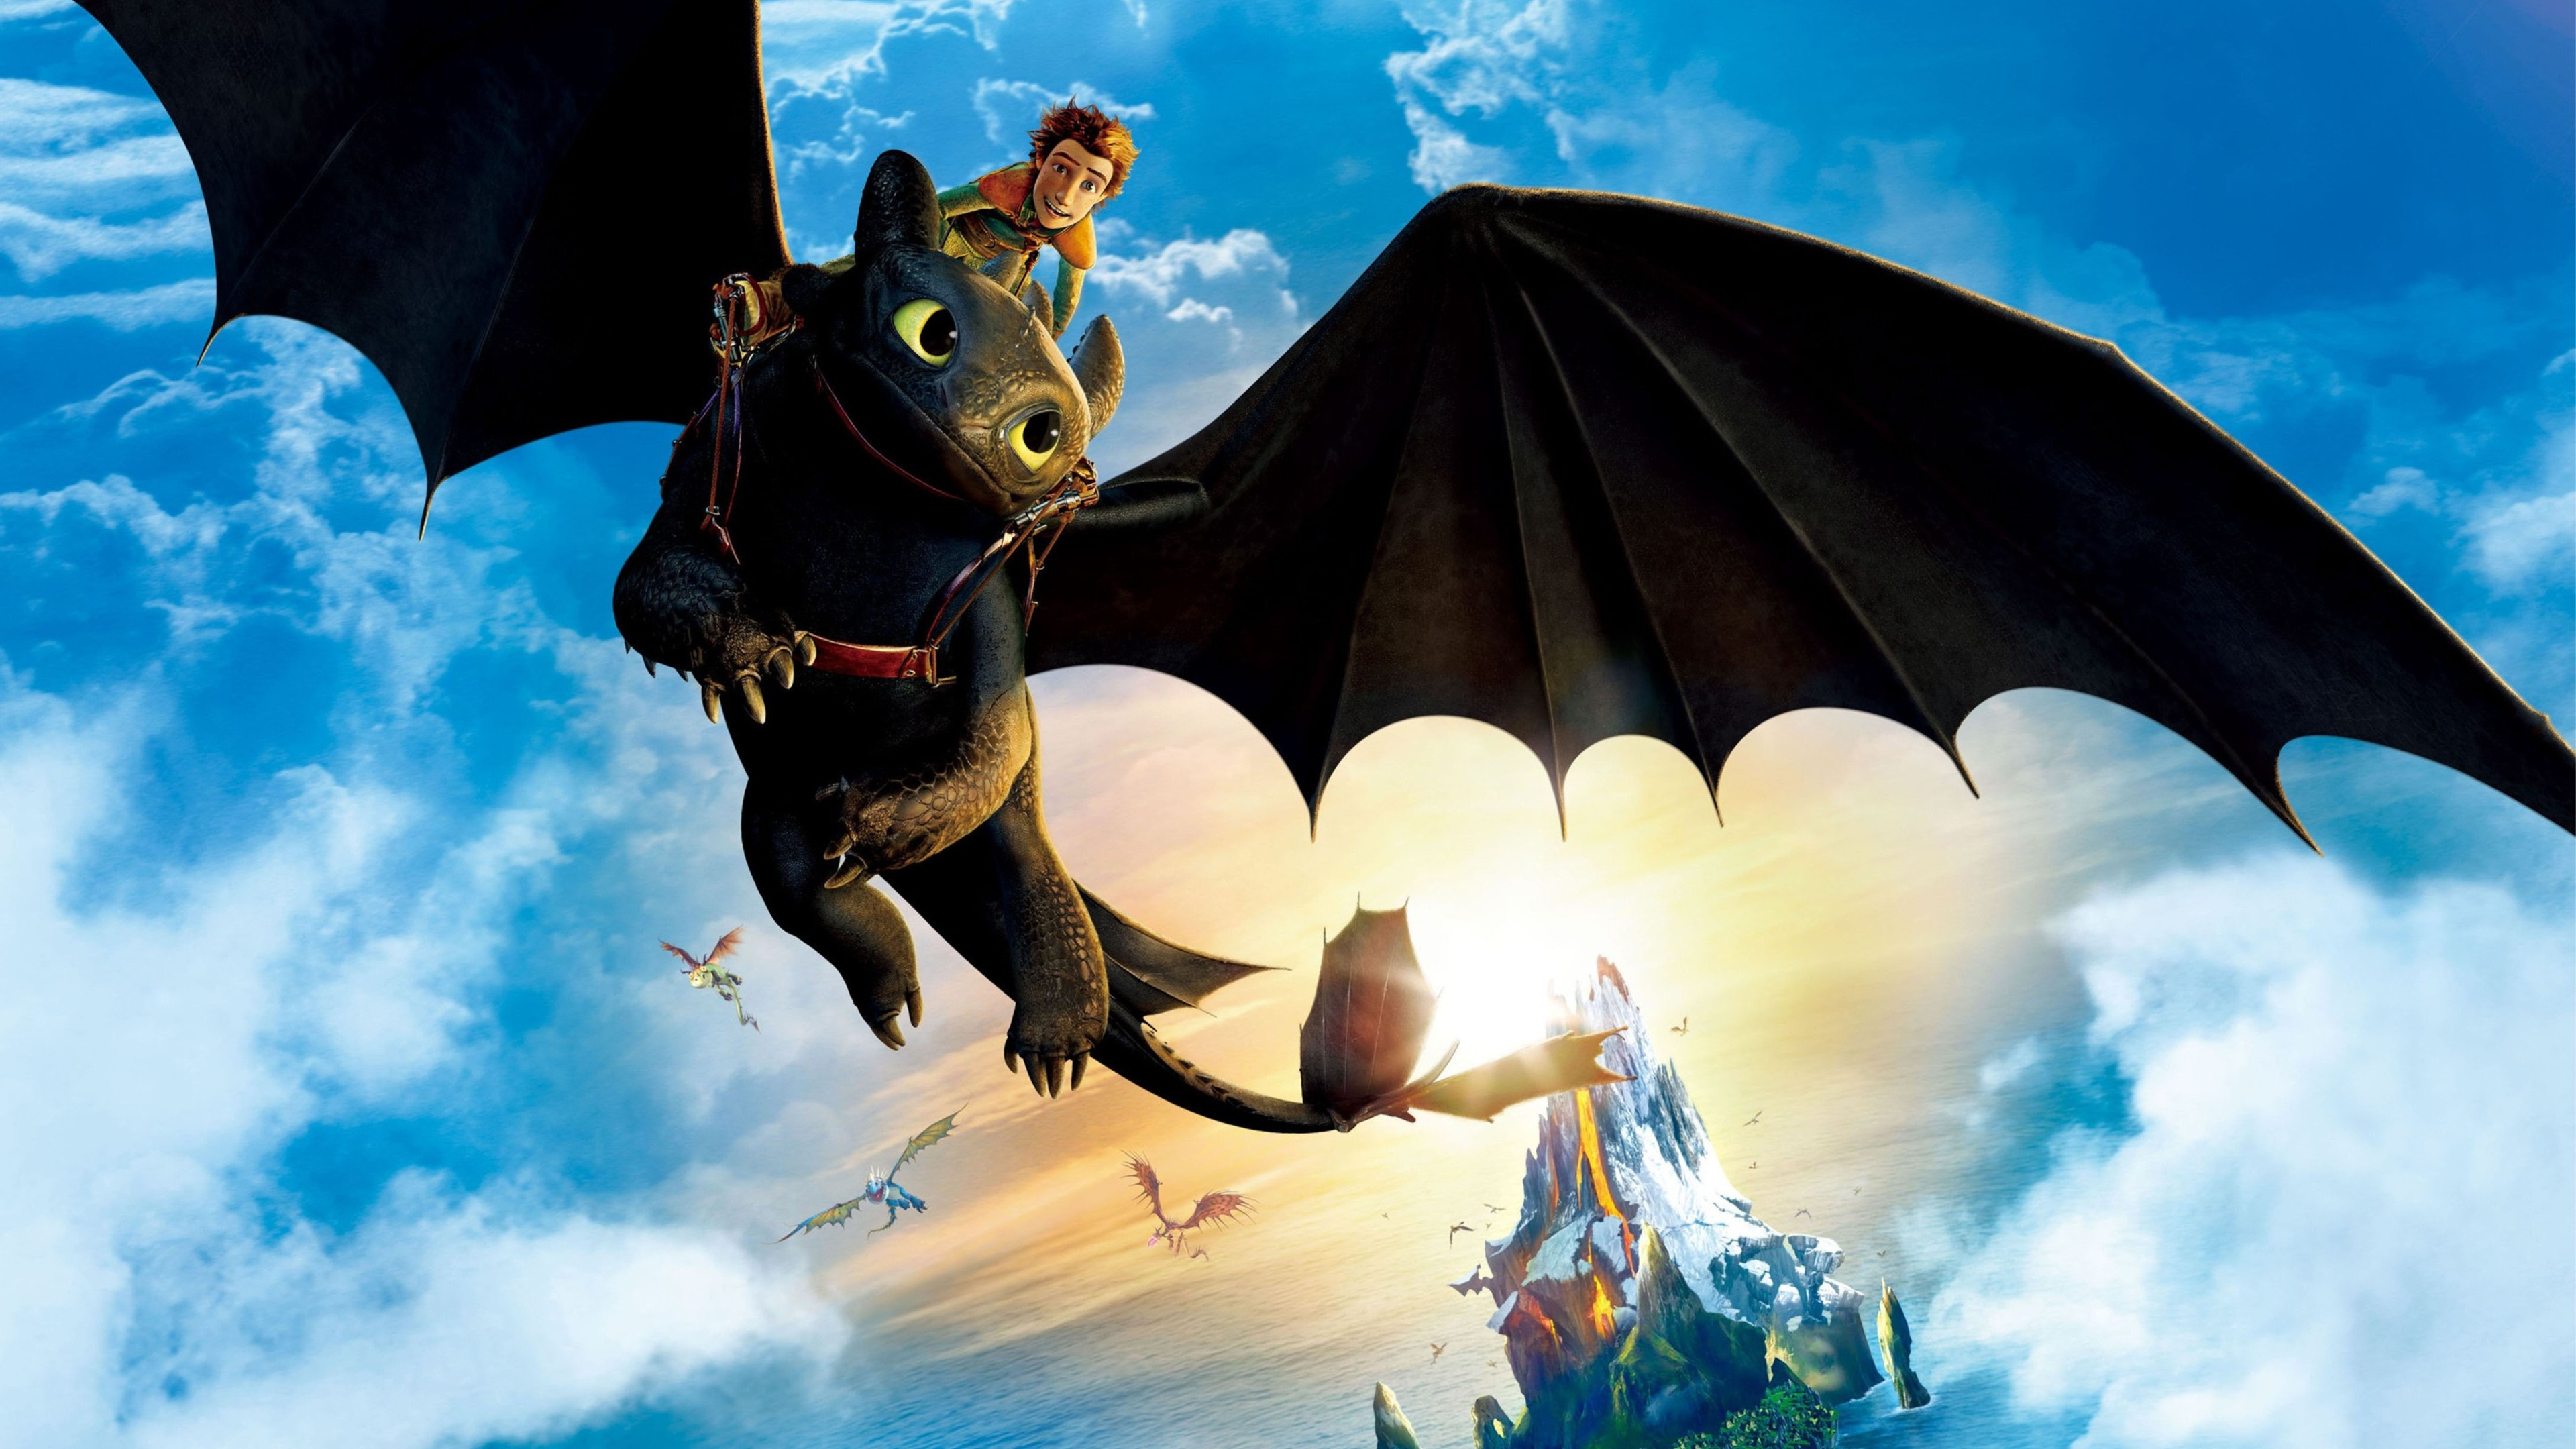 Toothless Dragon Wallpaper Hd Cute How To Train Your Dragon Latest Hd Movies 4k Wallpapers